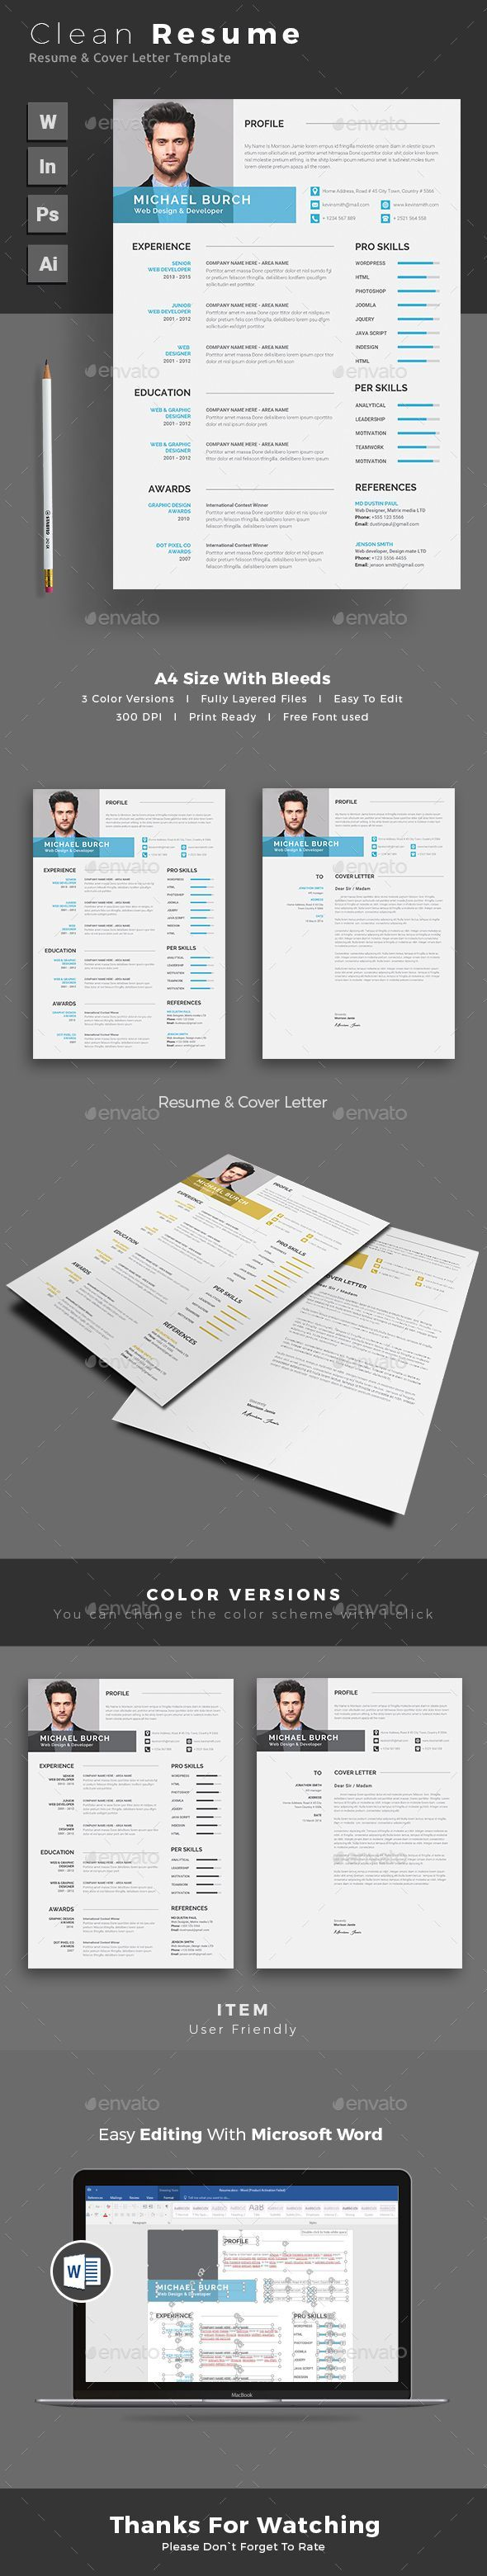 Resume 26 best Creative resumes images on